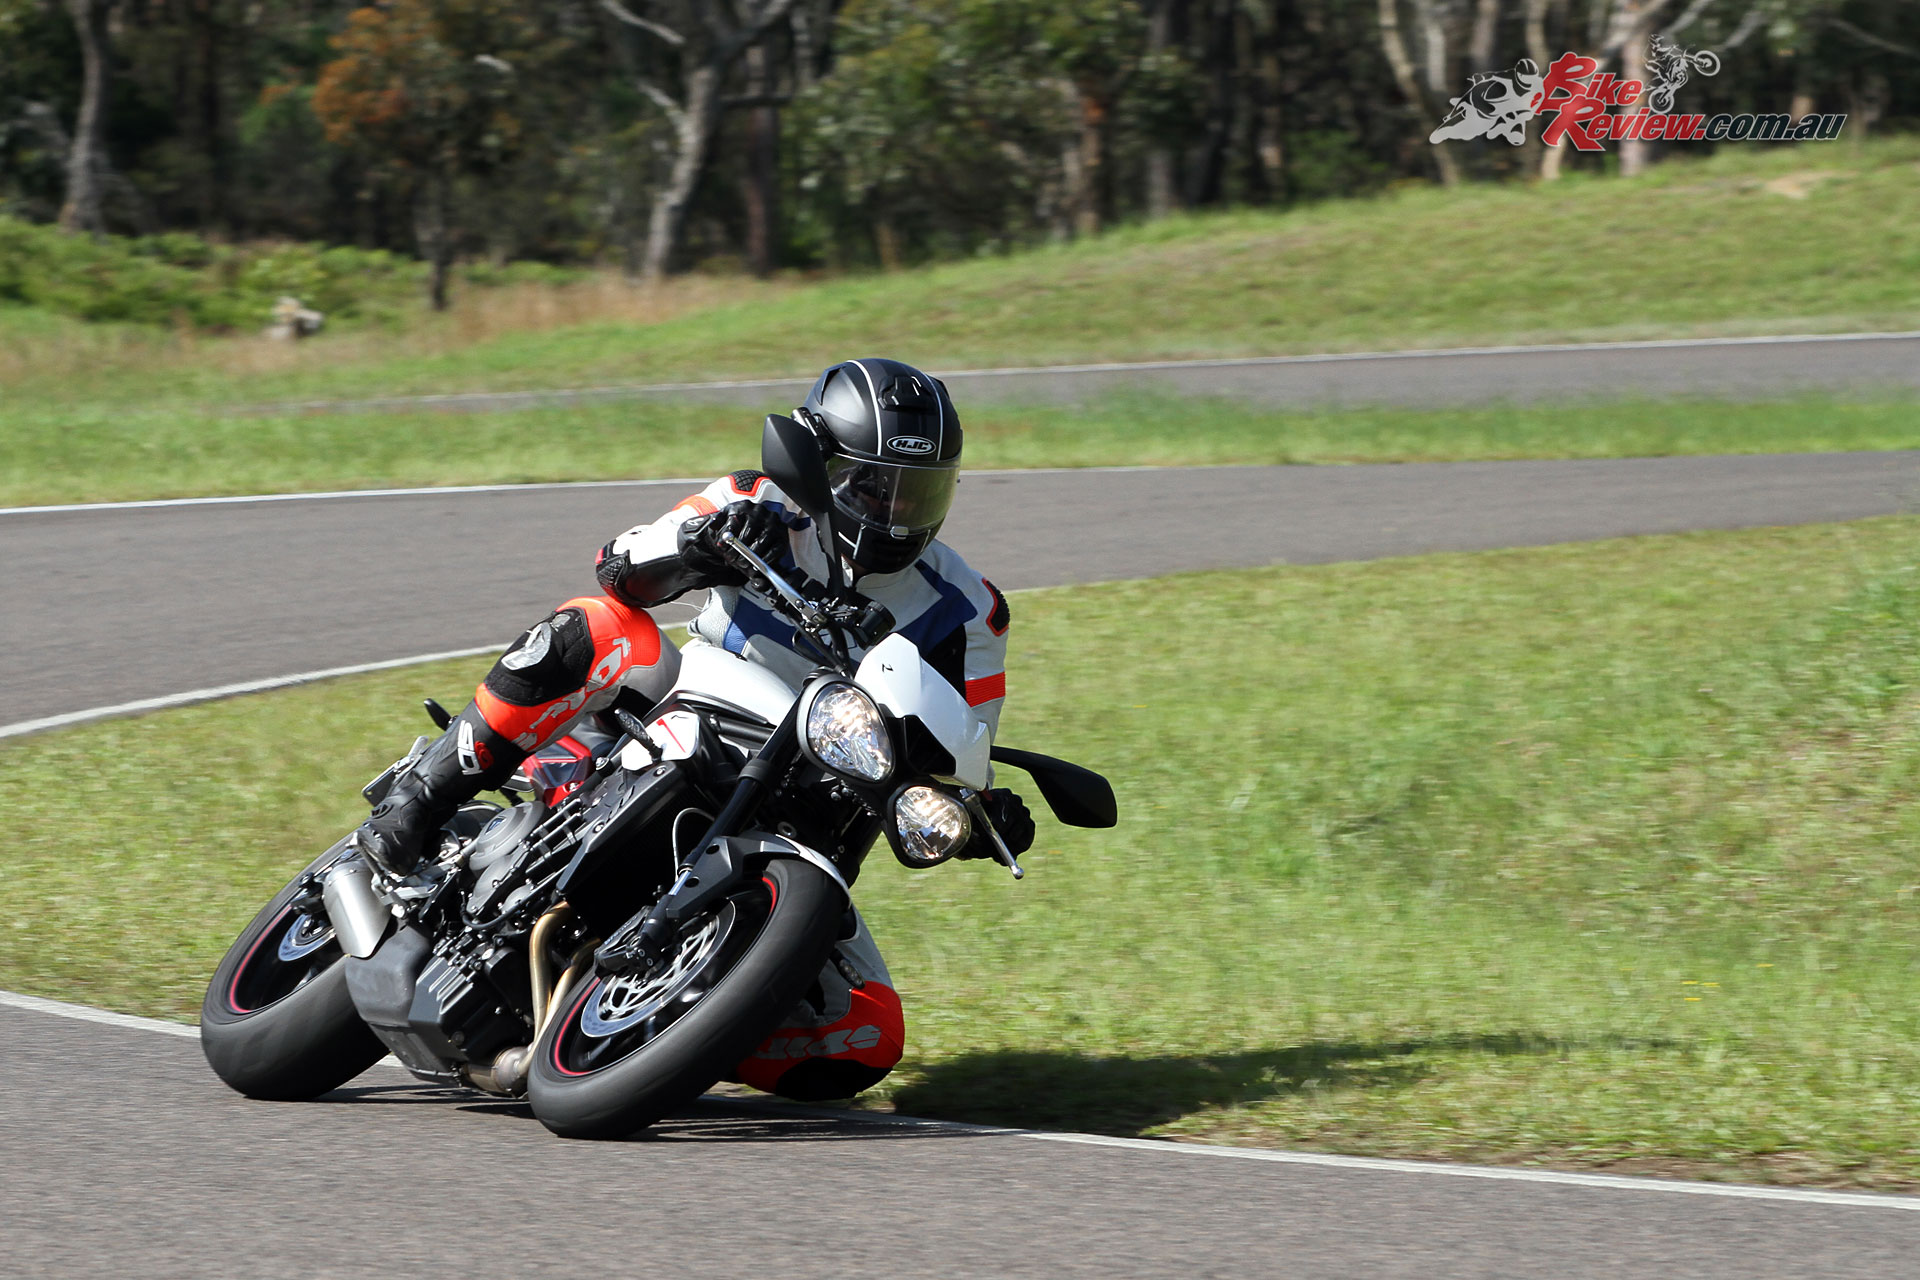 The new Street Triple is more linear and pulls from lower, while revving slower.